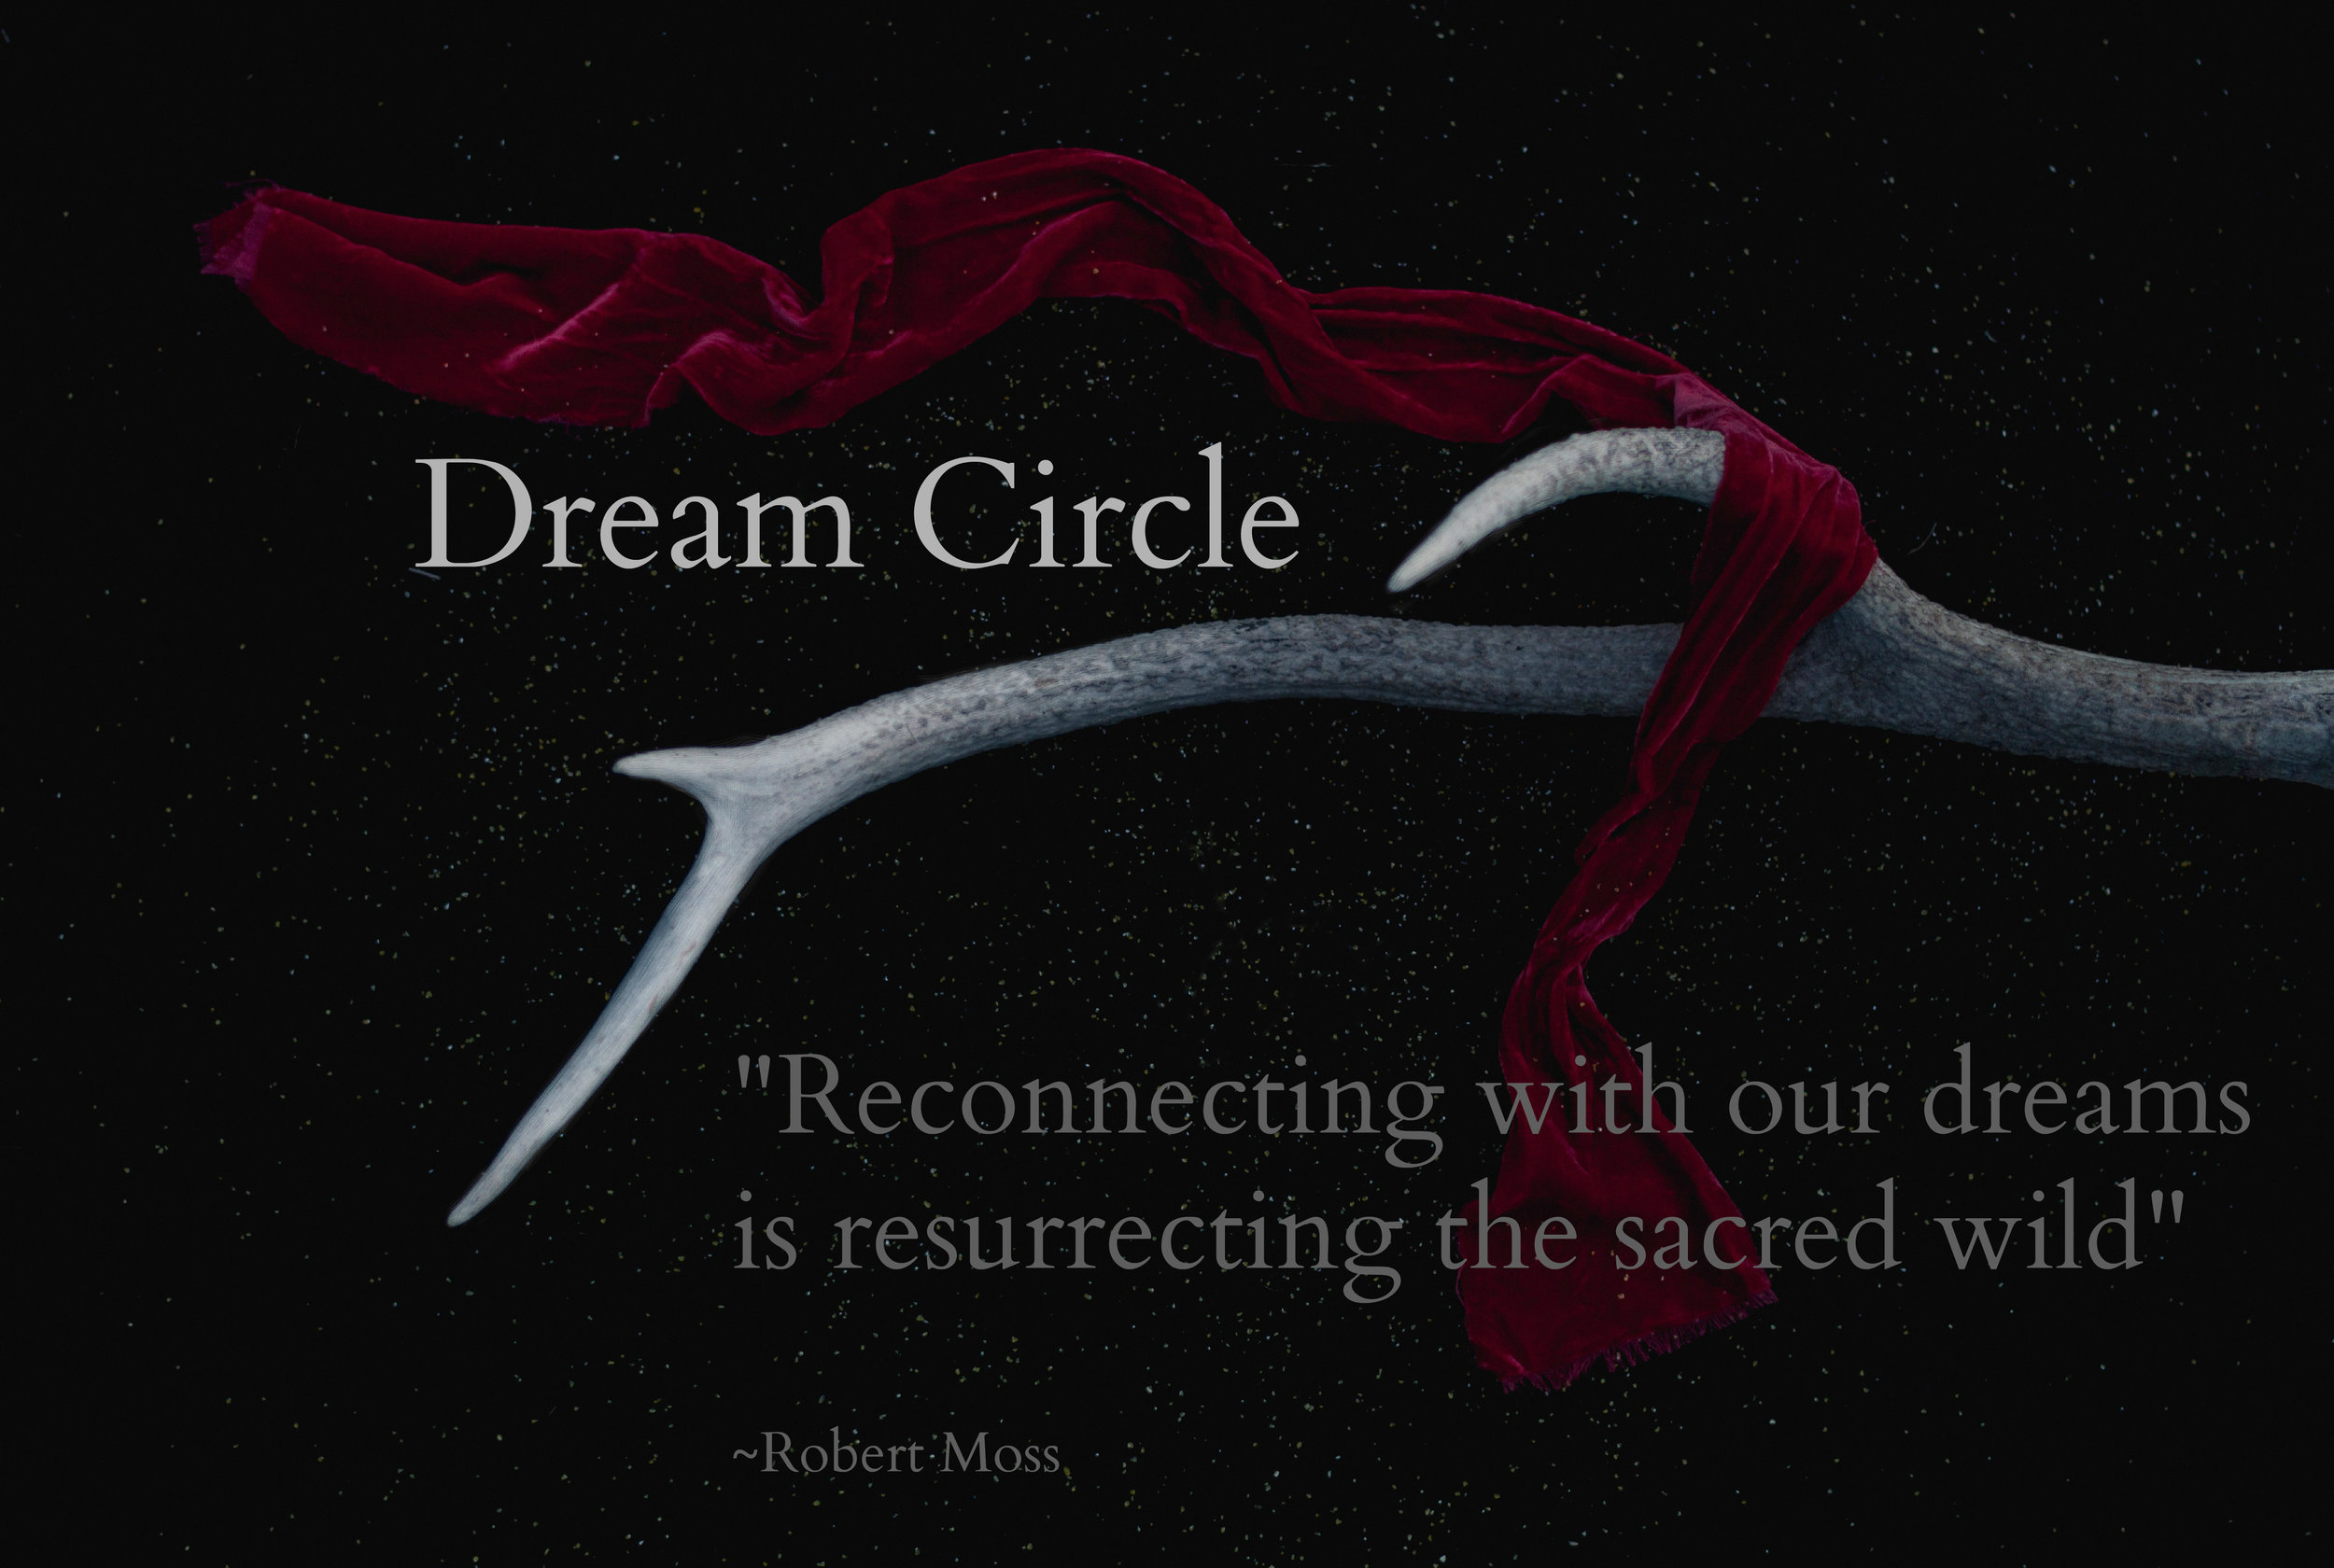 Holistic Dream Circle